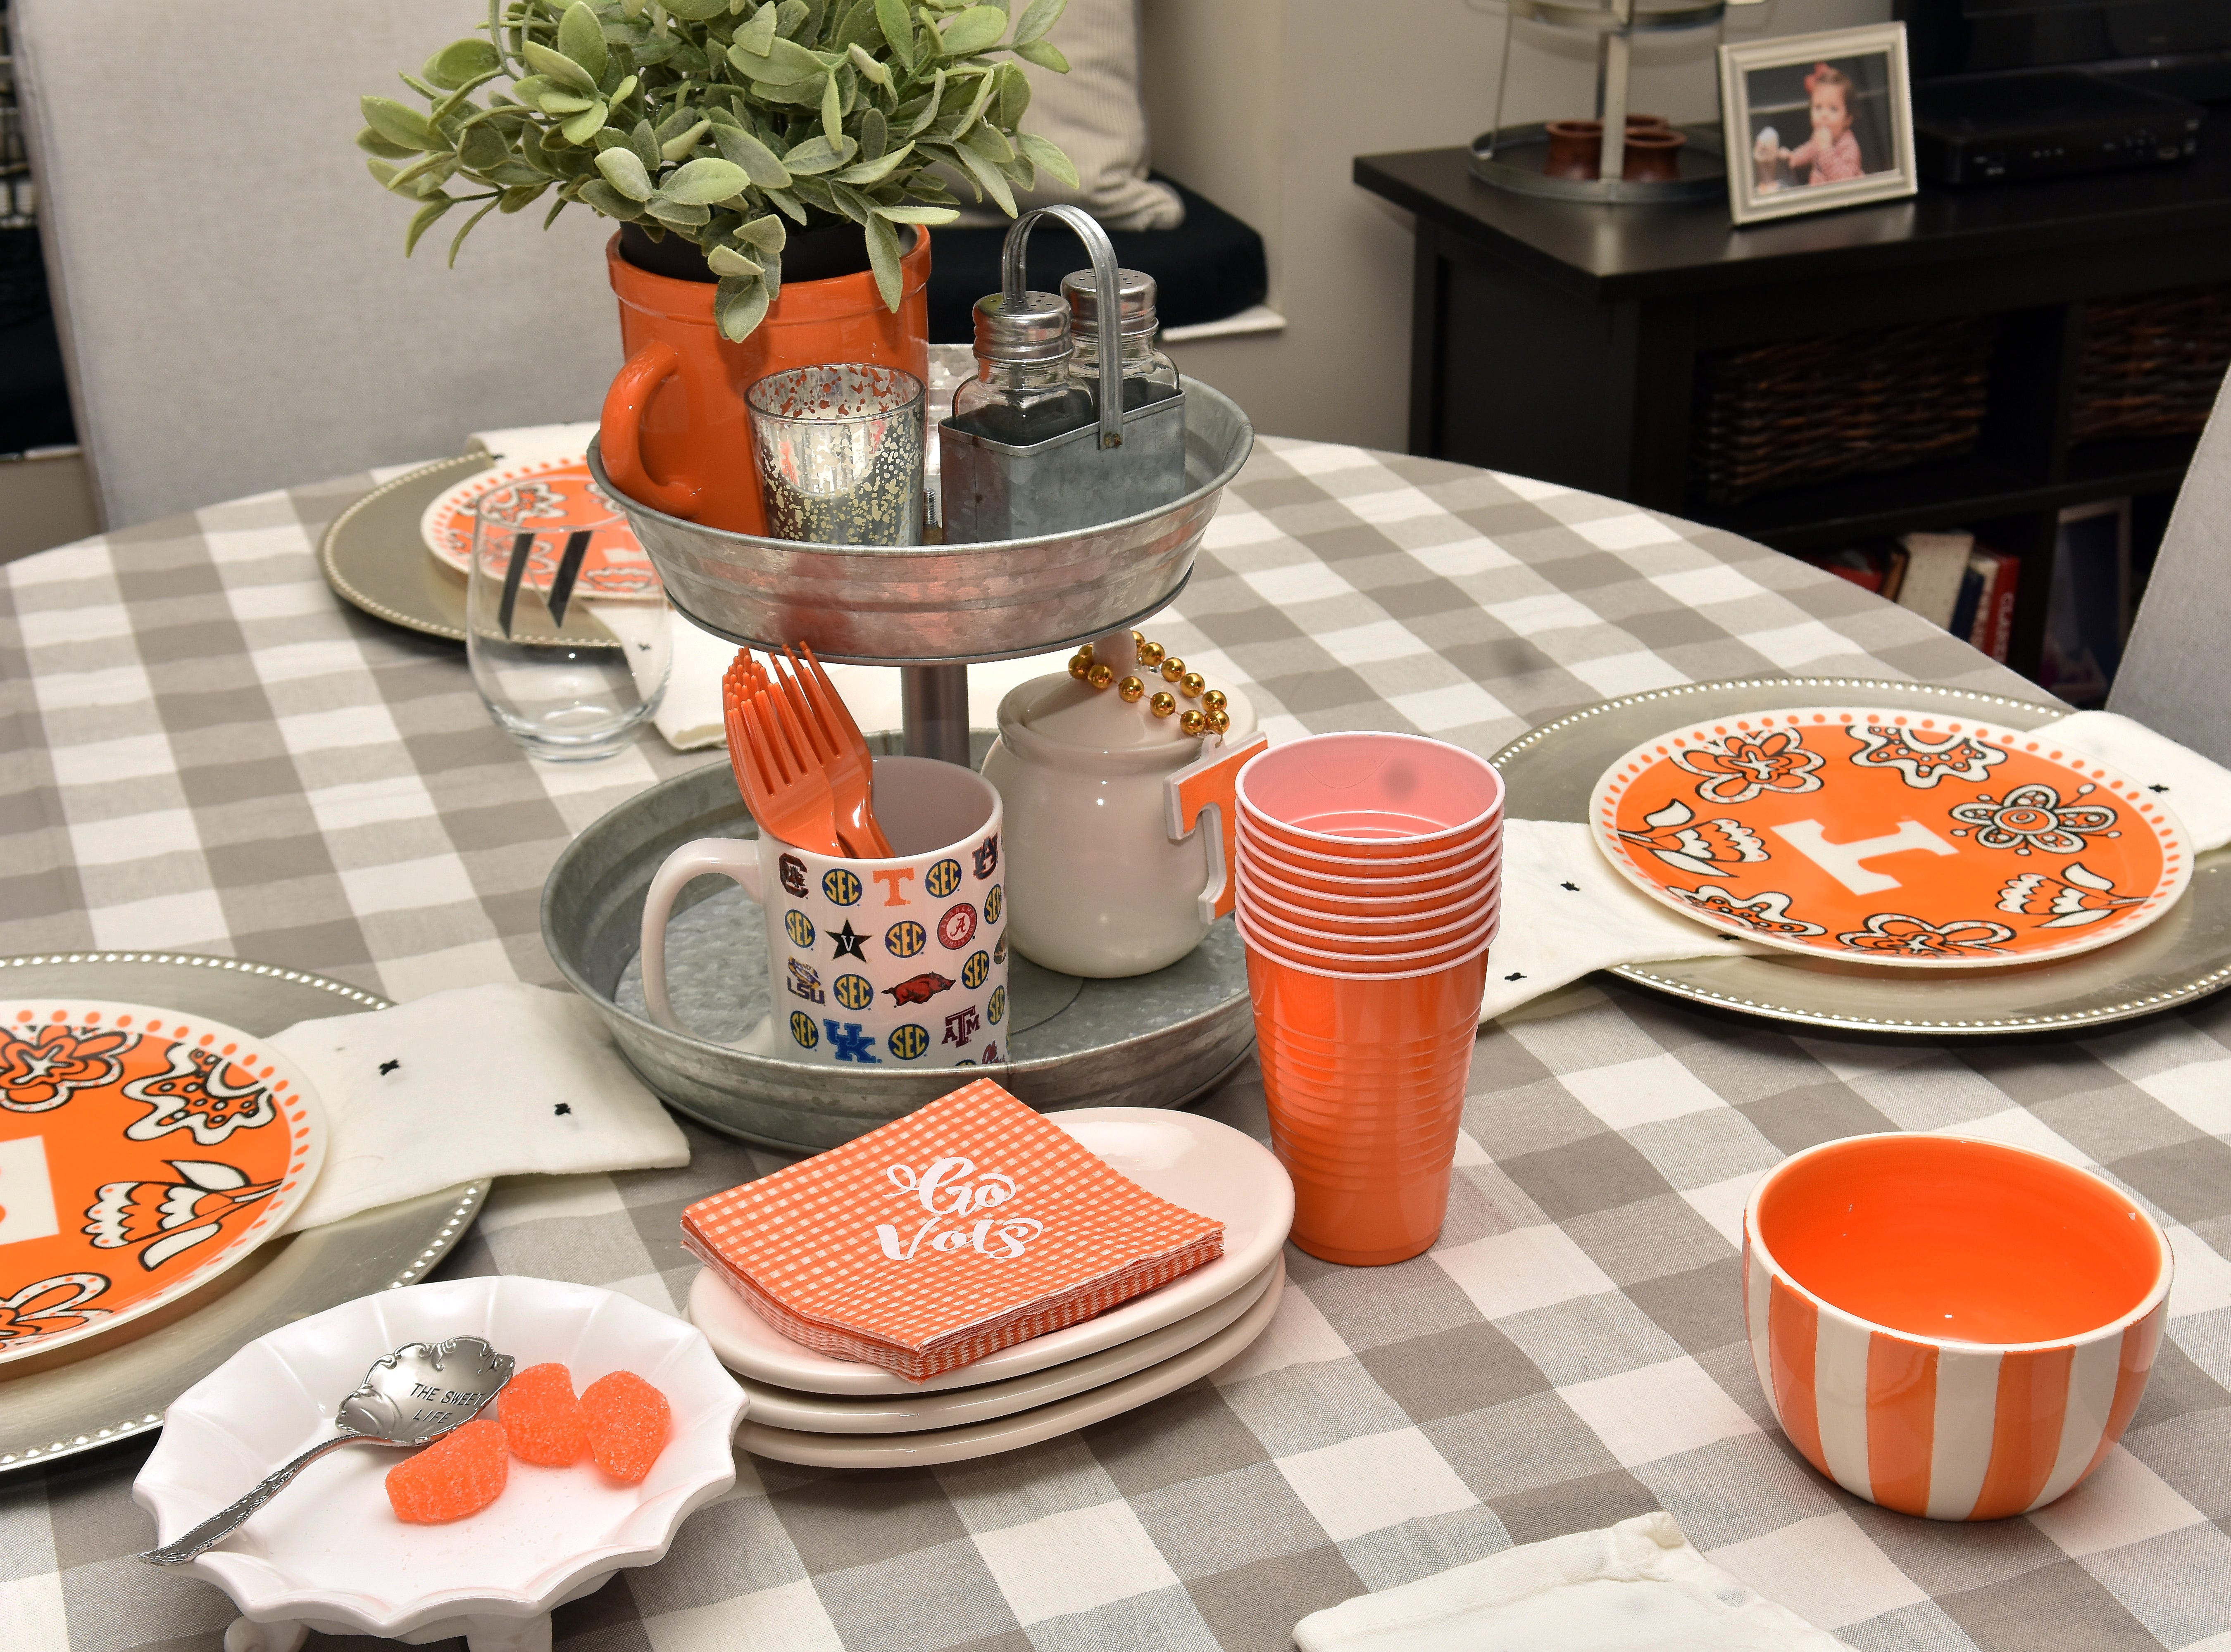 A table set up in the kitchen adds even more color to the party and provides extra seating.